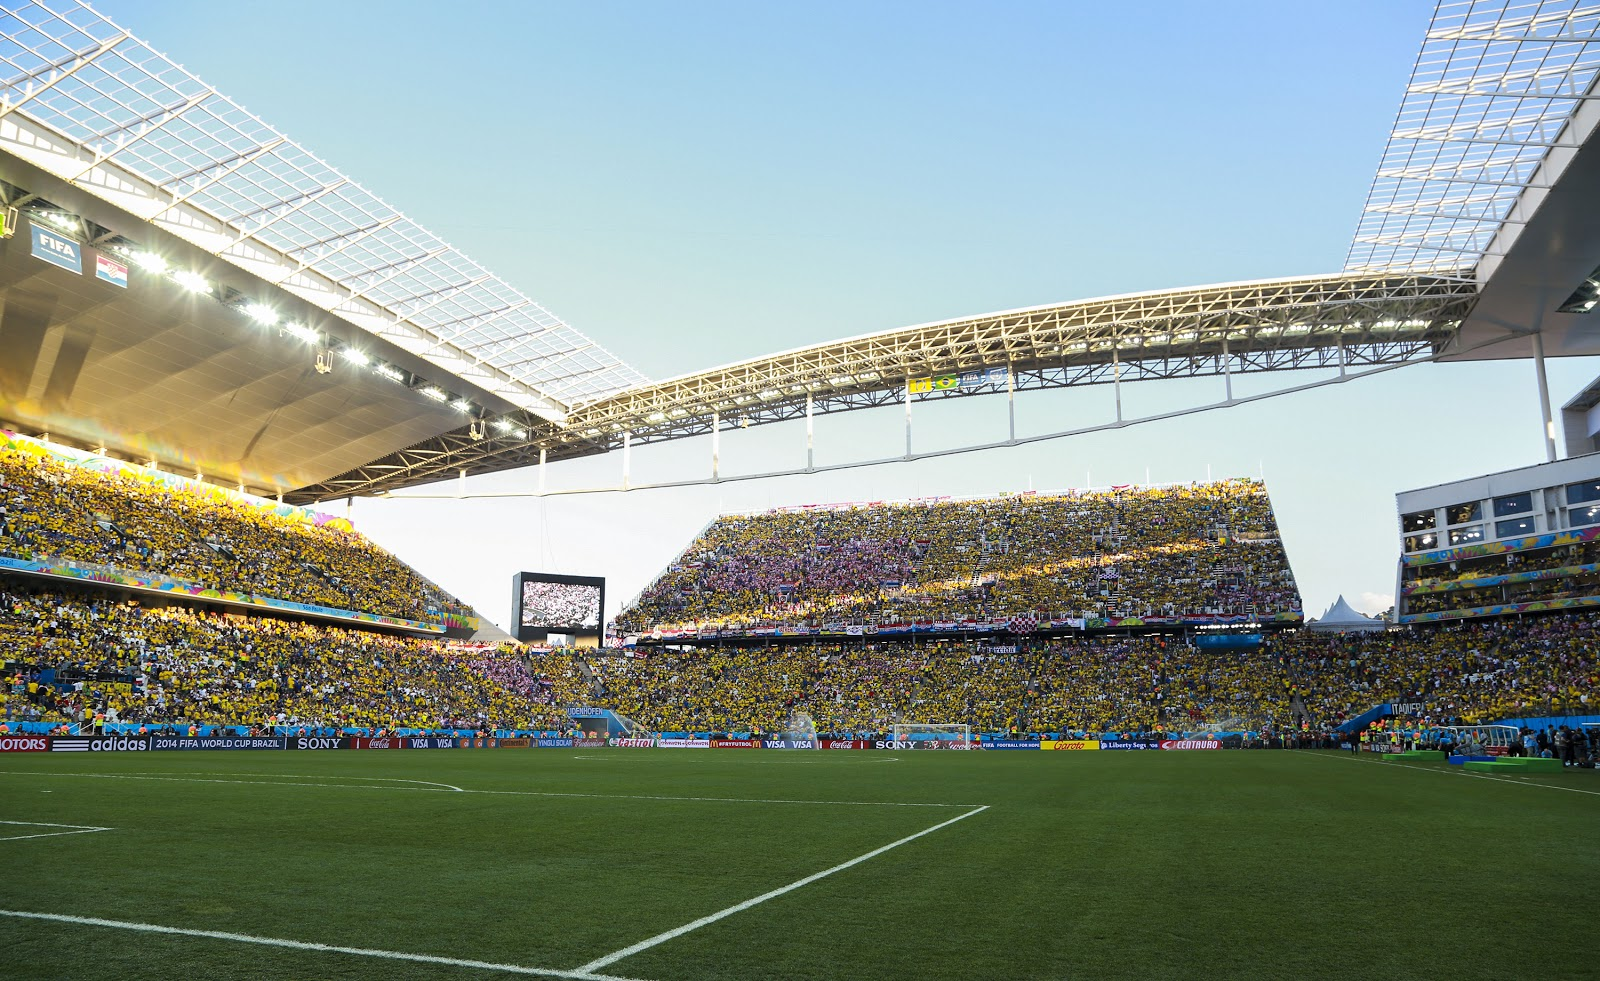 The 2014 FIFA World Cup spurred increased investment in Brazil, including stadiums and infrastructure.